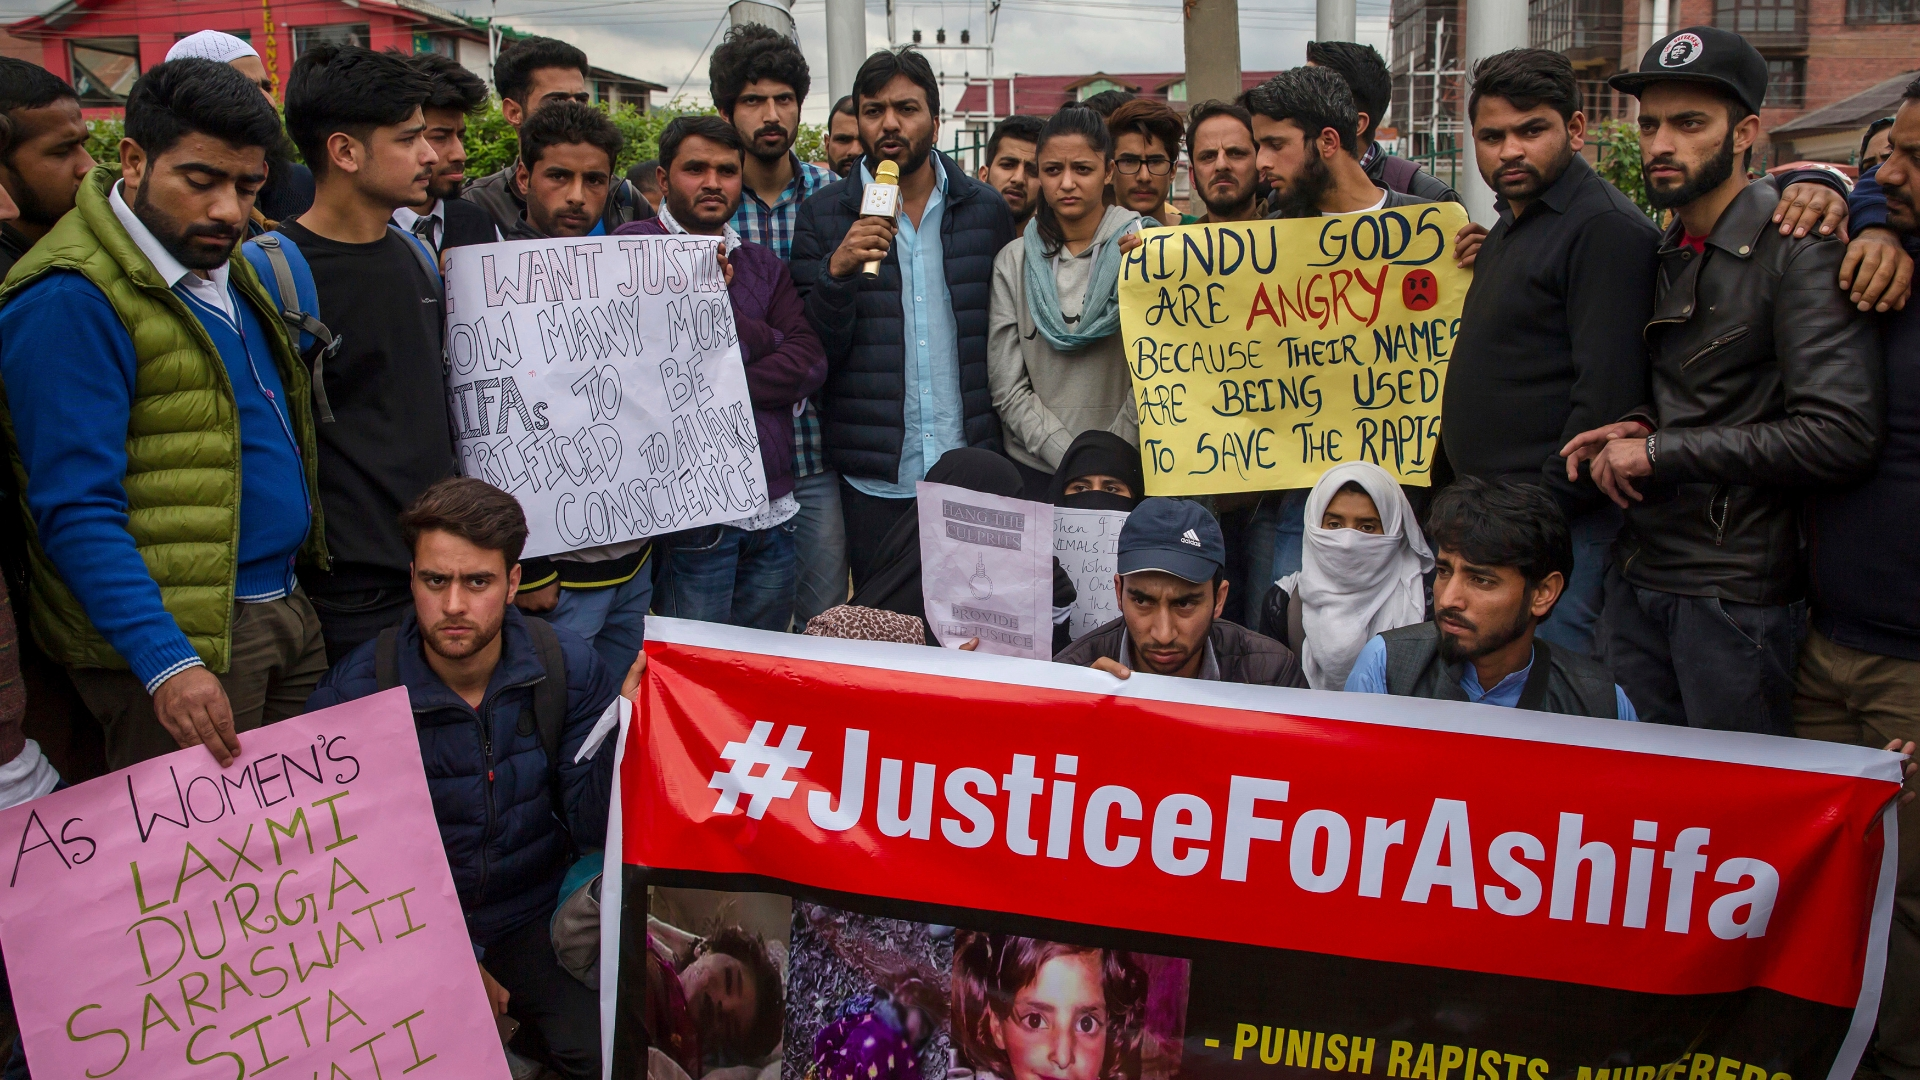 An 8-year-old's rape and murder inflames tensions between Hindus and Muslims in India